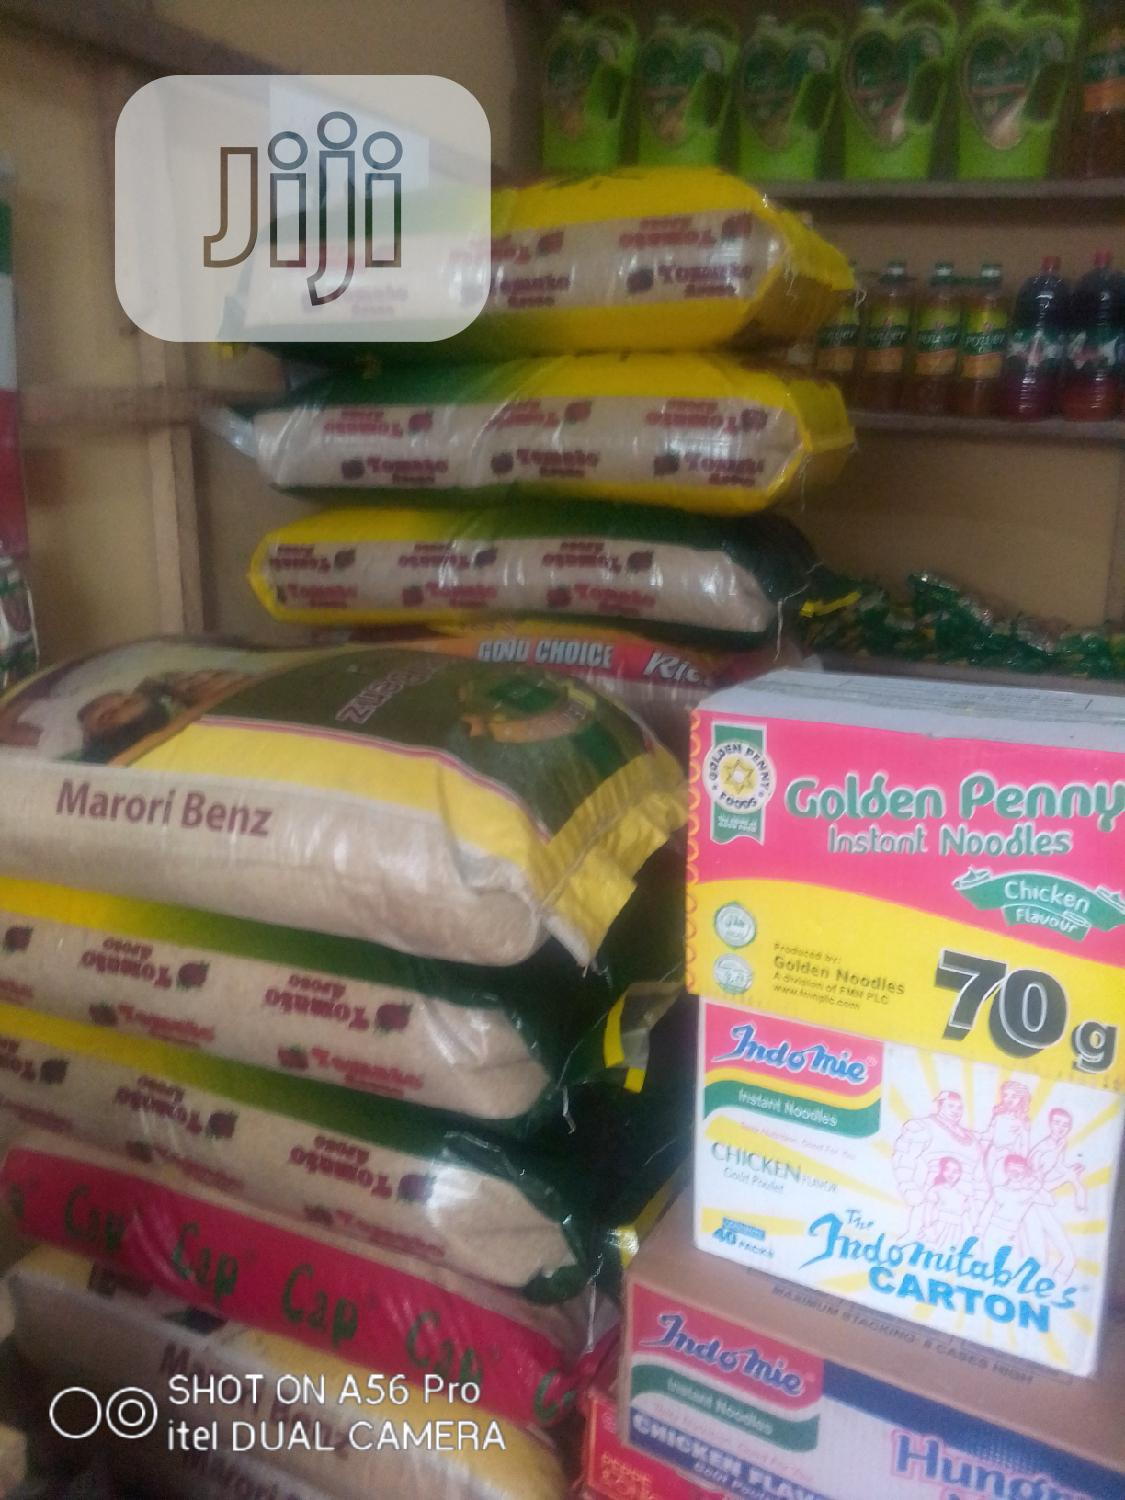 Bags Of First Grade Nigeria Rice And Original Foreign Rice | Meals & Drinks for sale in Benin City, Edo State, Nigeria